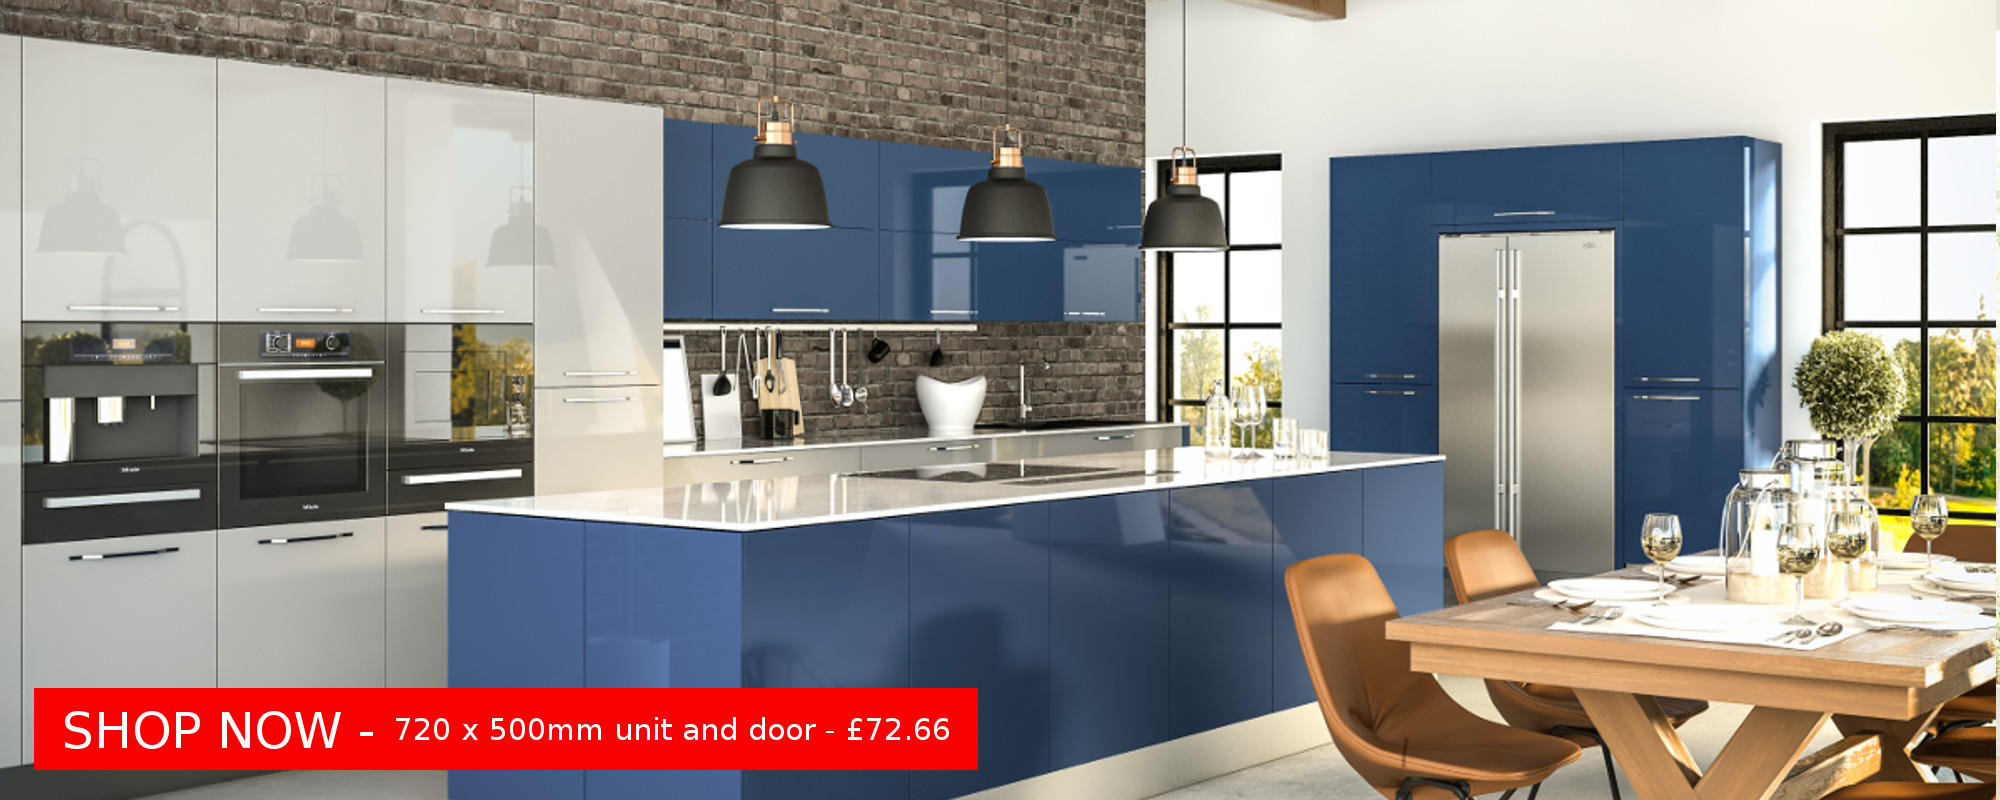 Ultragloss Baltic Blue & Ultragloss Light Grey Kitchen